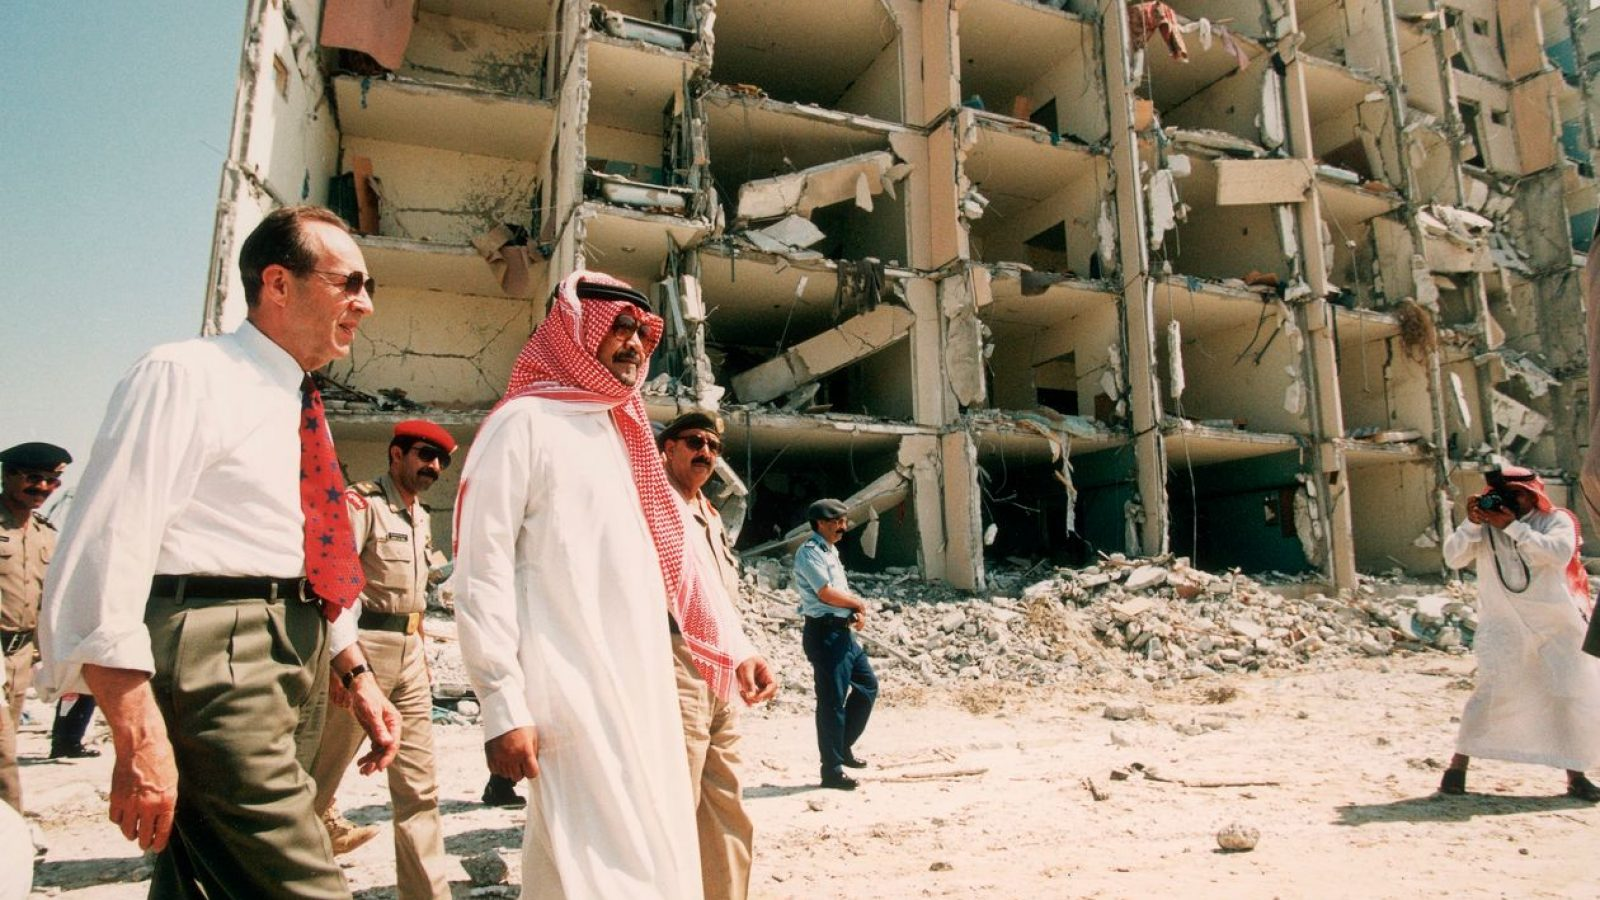 Then-Secretary of Defense William Perry tours the wreckage of Khobar Towers in Dhahran, Saudi Arabia